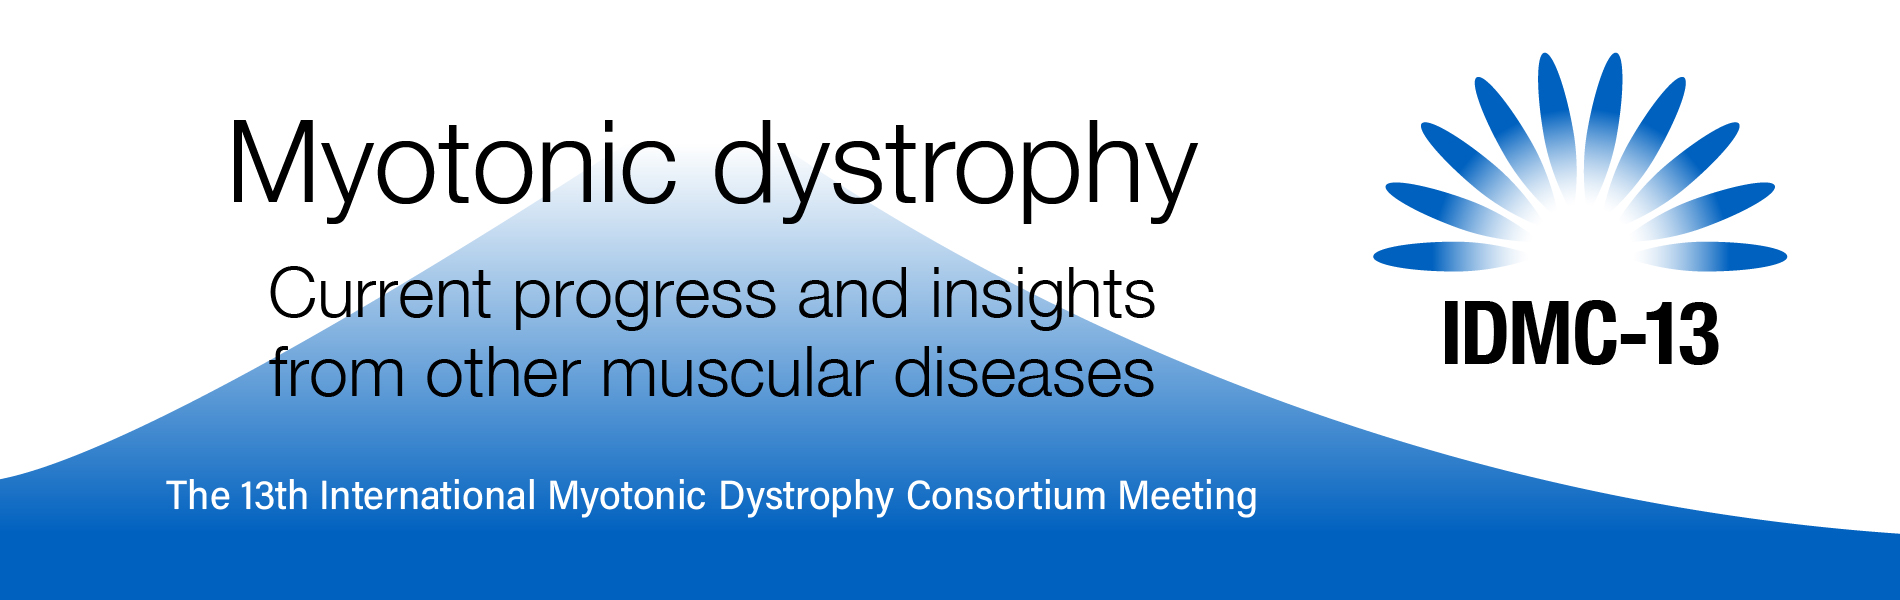 Nyotonic Dystrophy: Current Progress and Insights from Other Muscular Diseases